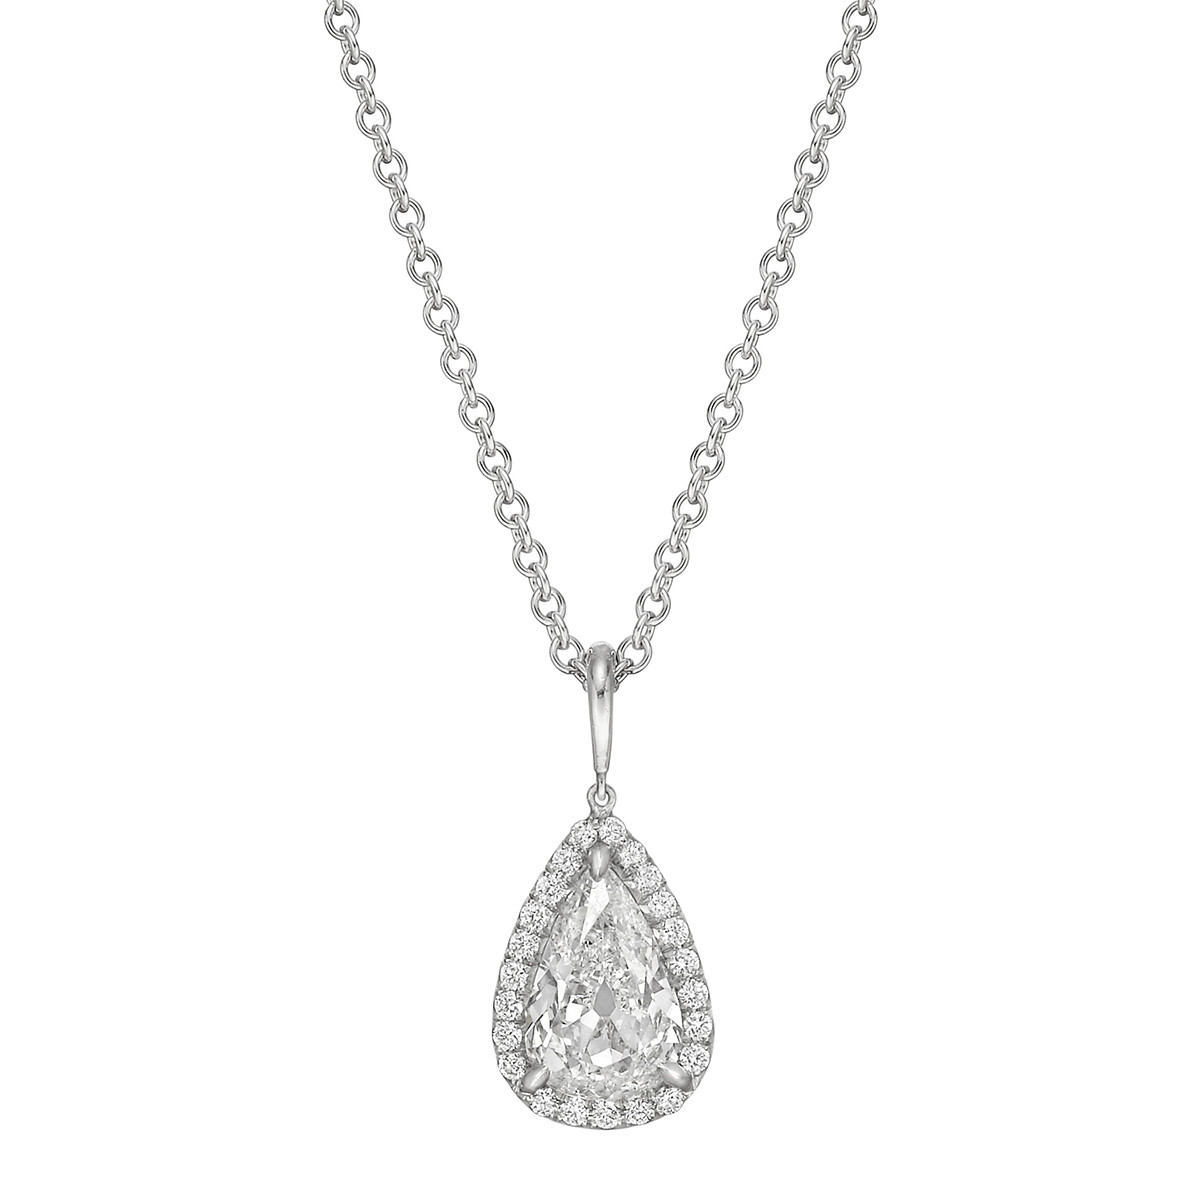 1.51 Carat Pear Brilliant Diamond Halo Pendant